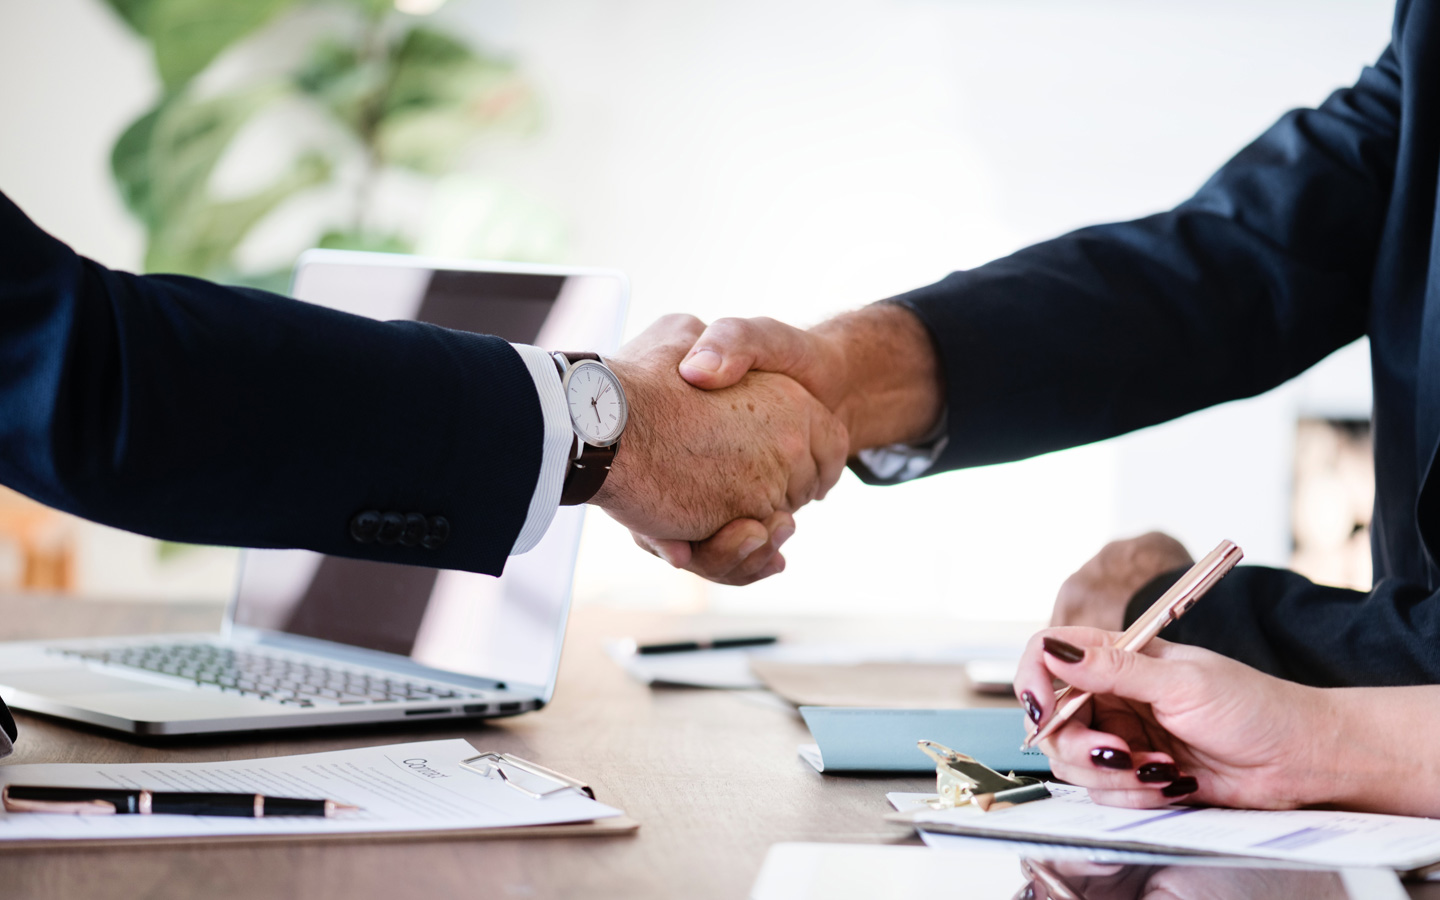 Client and agent shaking hands